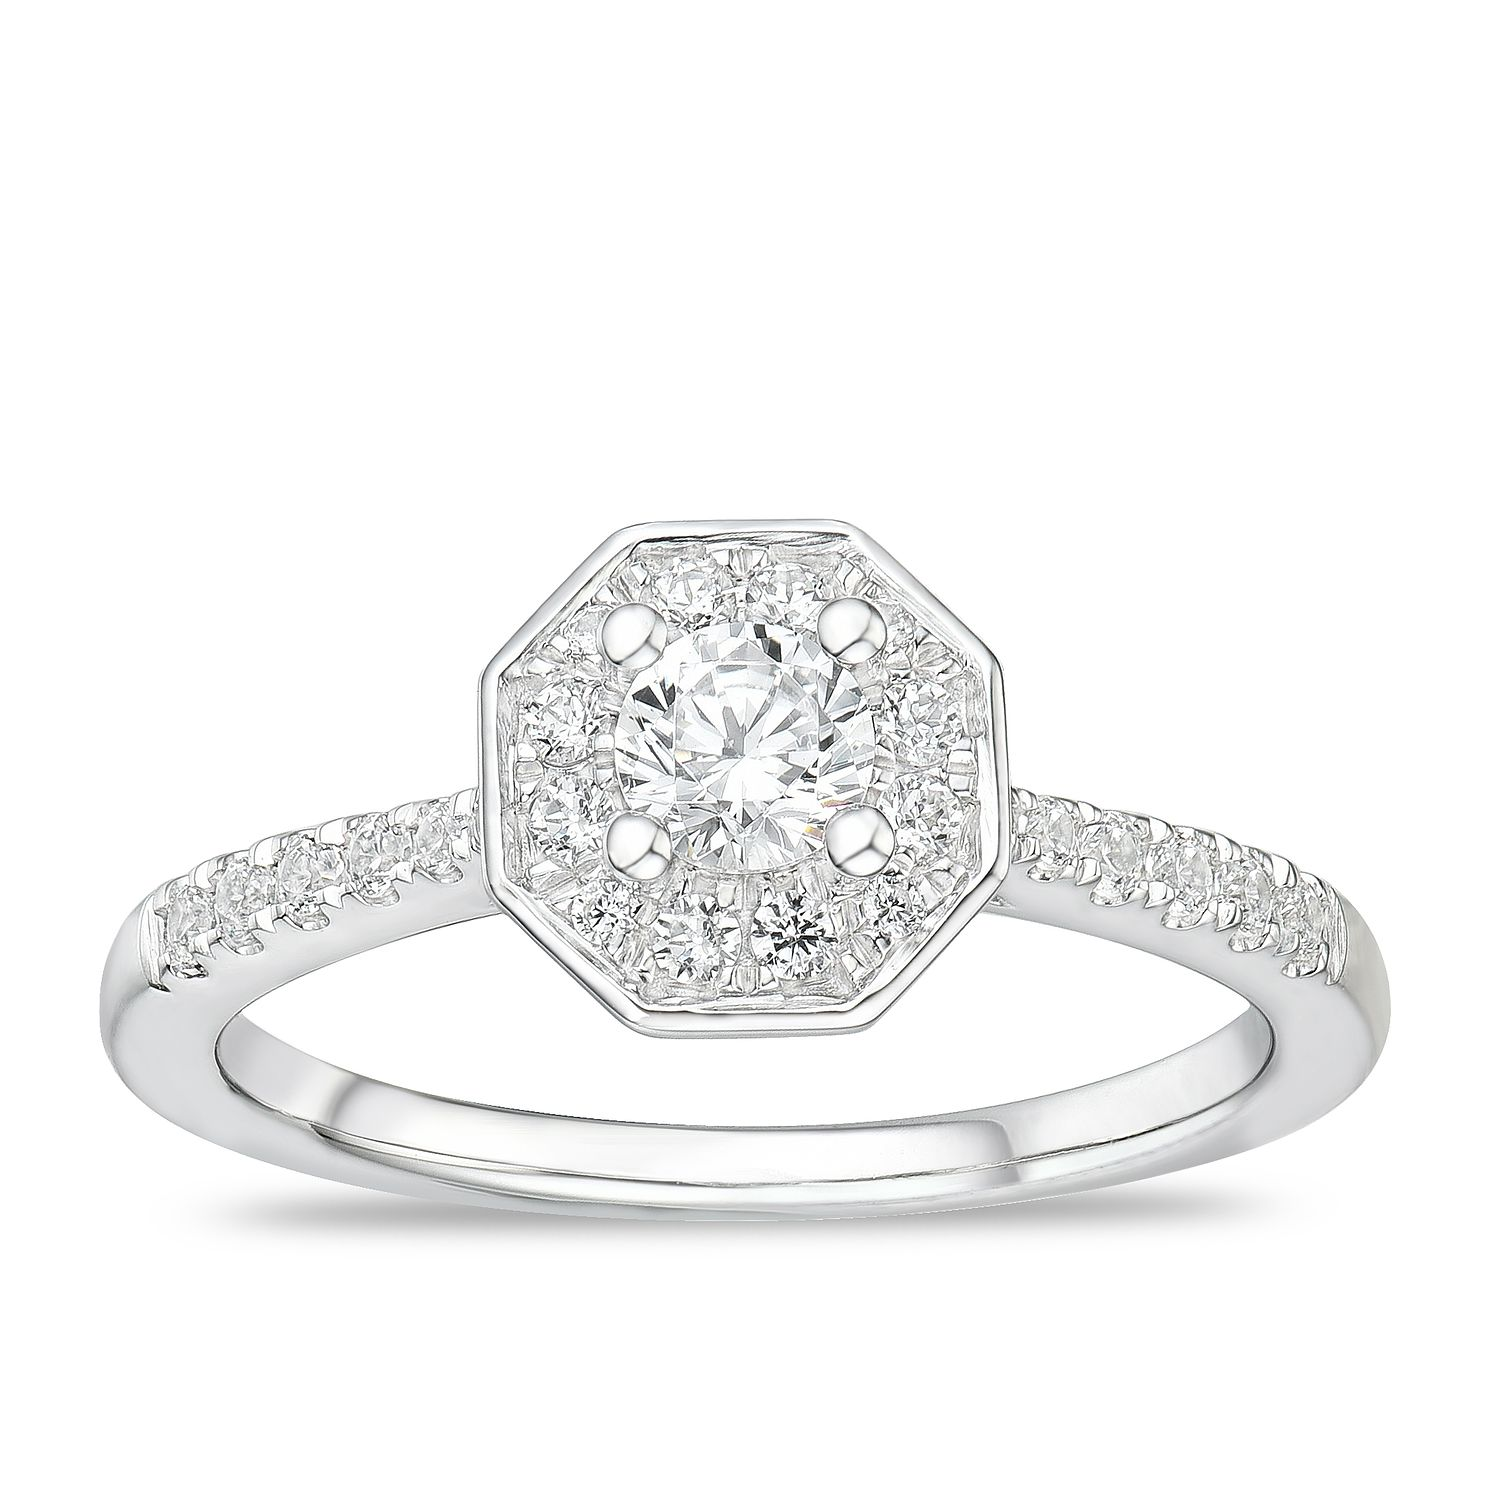 Tolkowsky 18ct White Gold 1/2ct Diamond Octagon Halo Ring - Product number 4175506